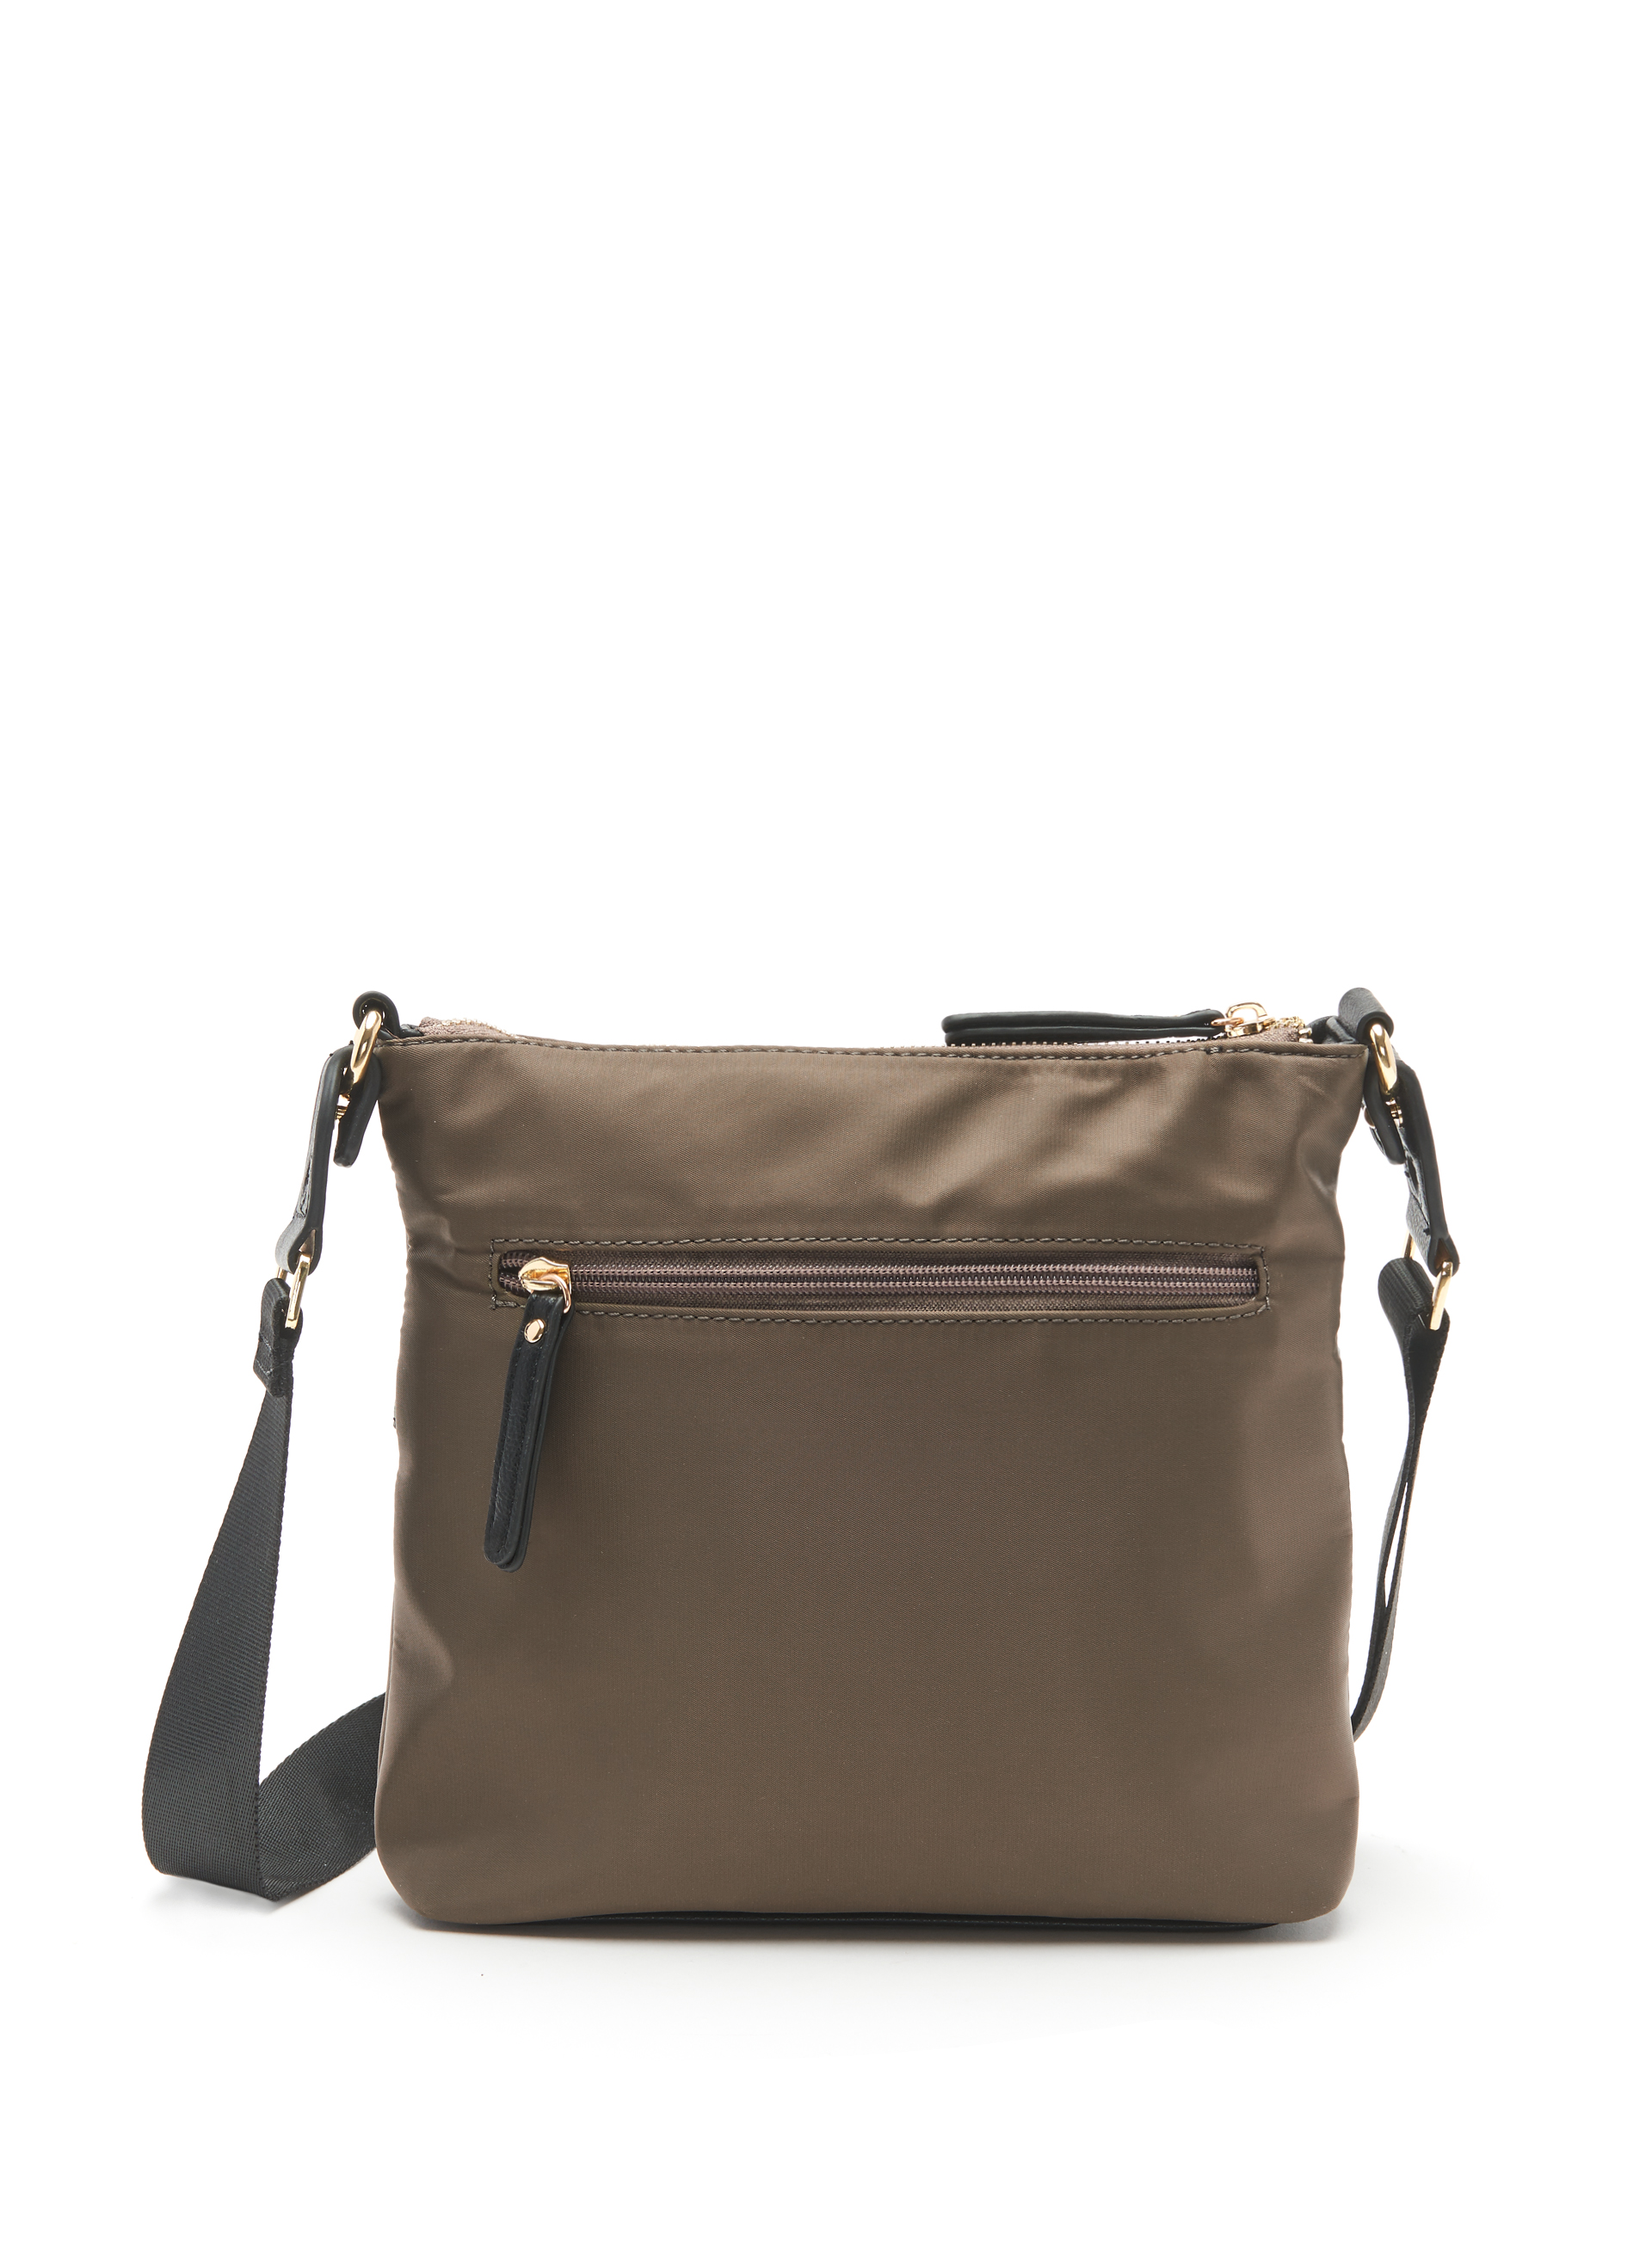 Nylon Crossbody Bag, Green, hi-res